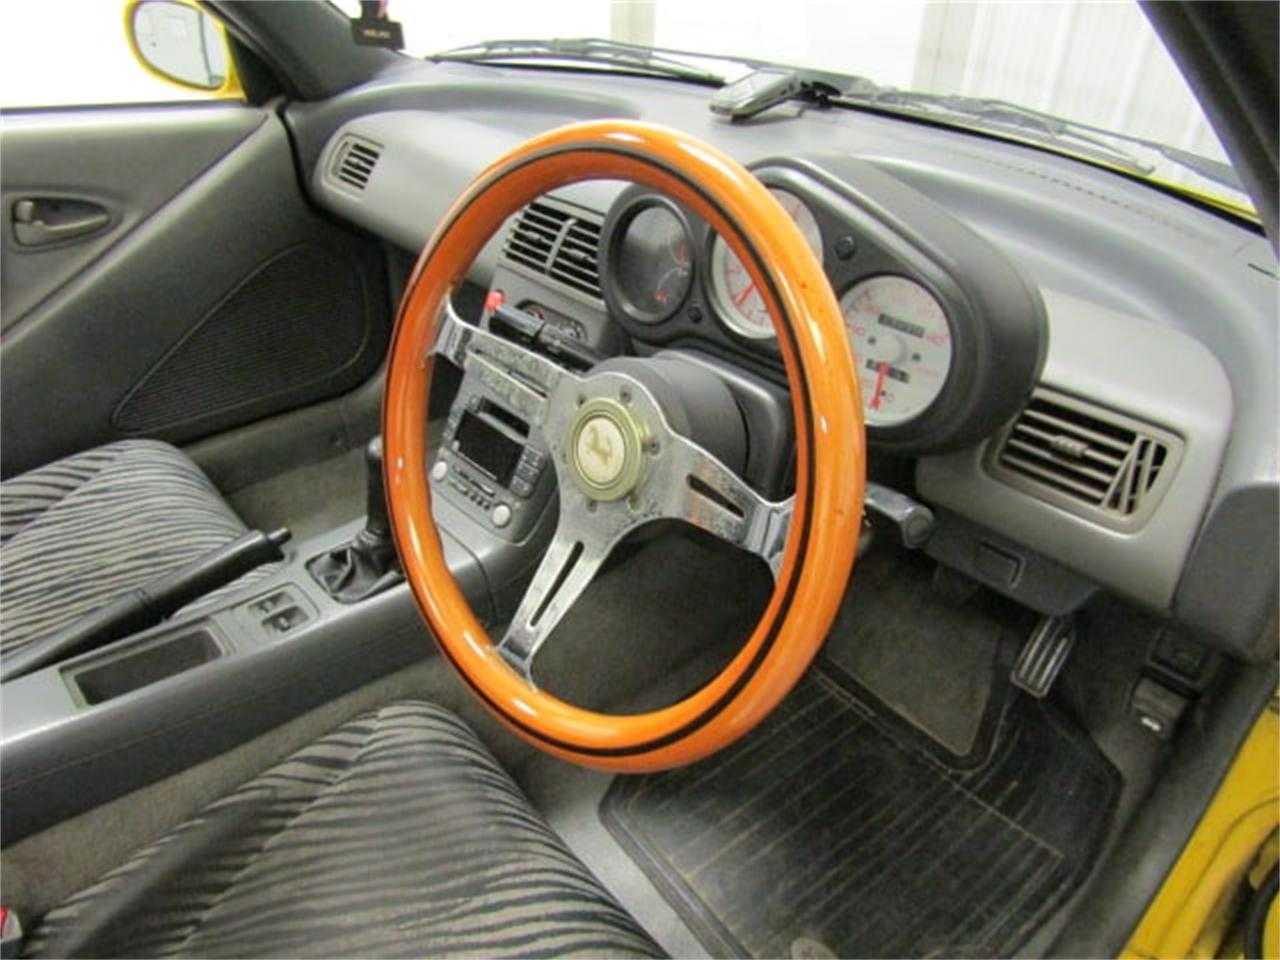 Large Picture of '91 Honda Beat - $4,990.00 Offered by Duncan Imports & Classic Cars - JL81